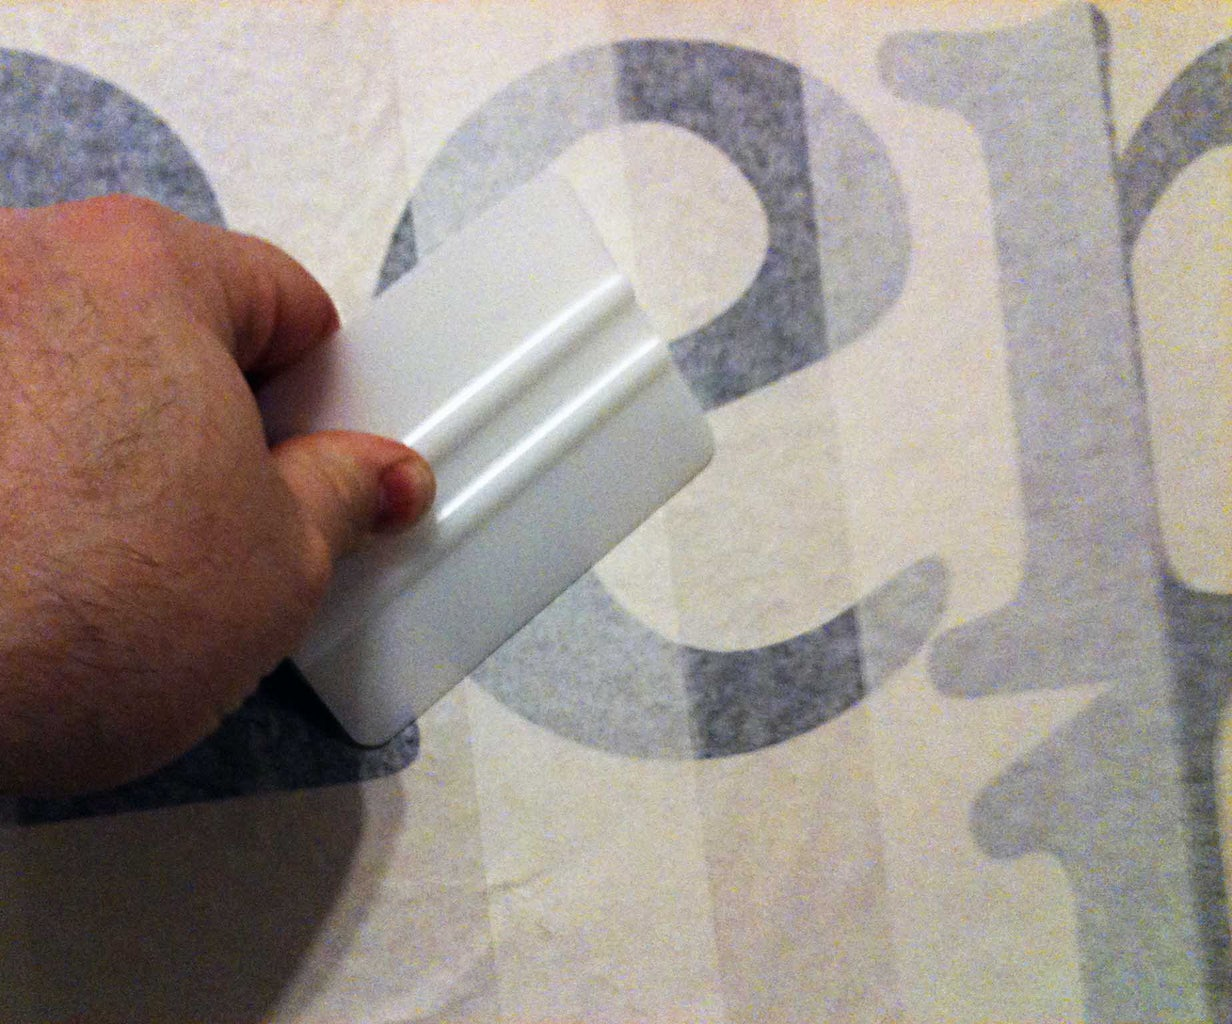 Applying the Design to the Target Surface